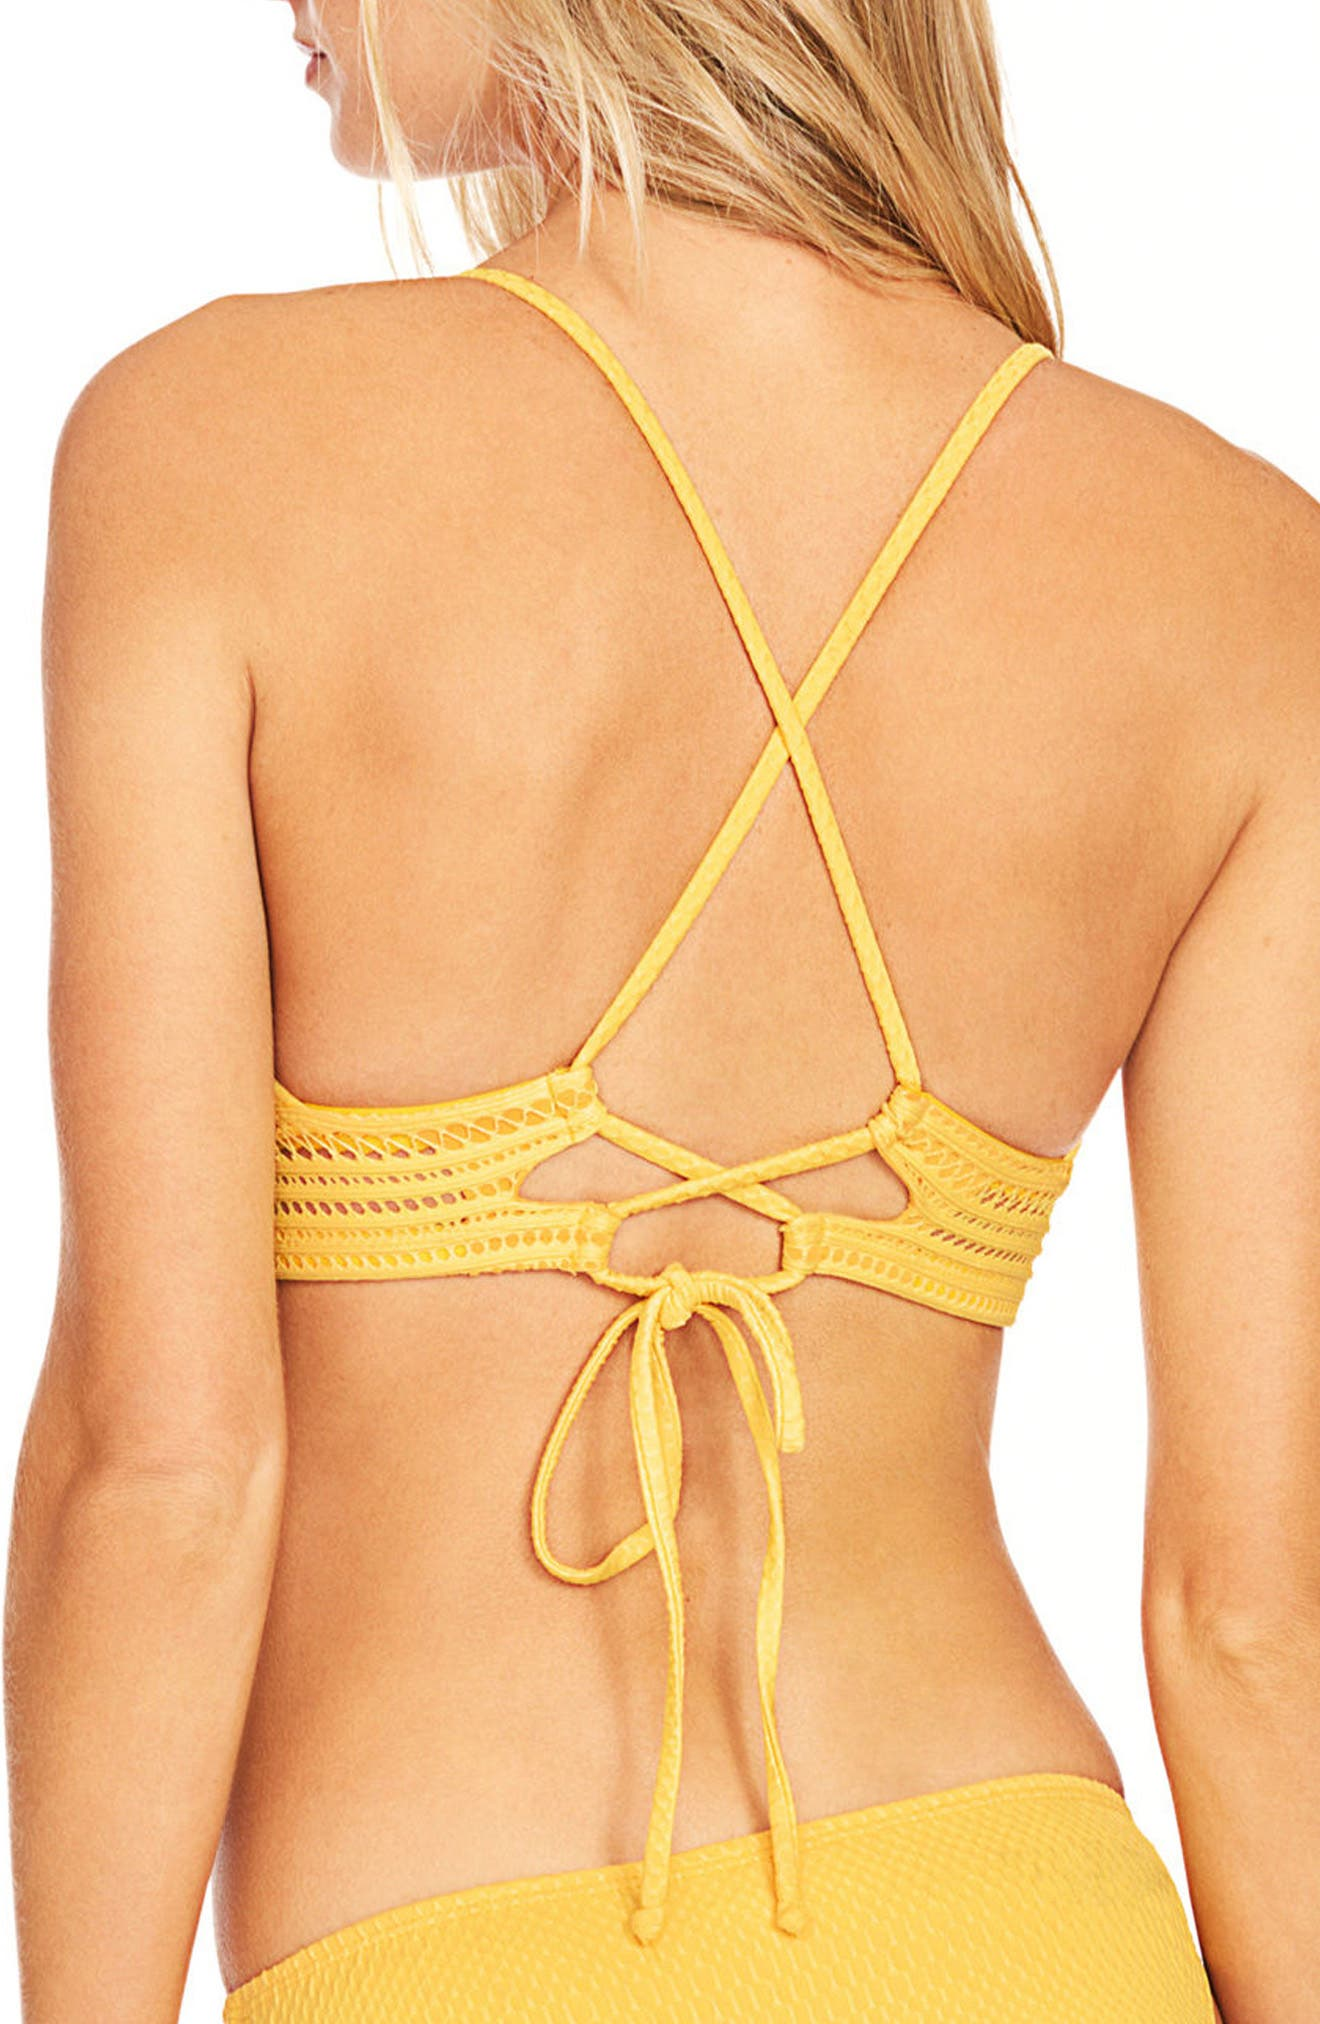 Perla Bikini Top,                             Alternate thumbnail 2, color,                             DANDELION